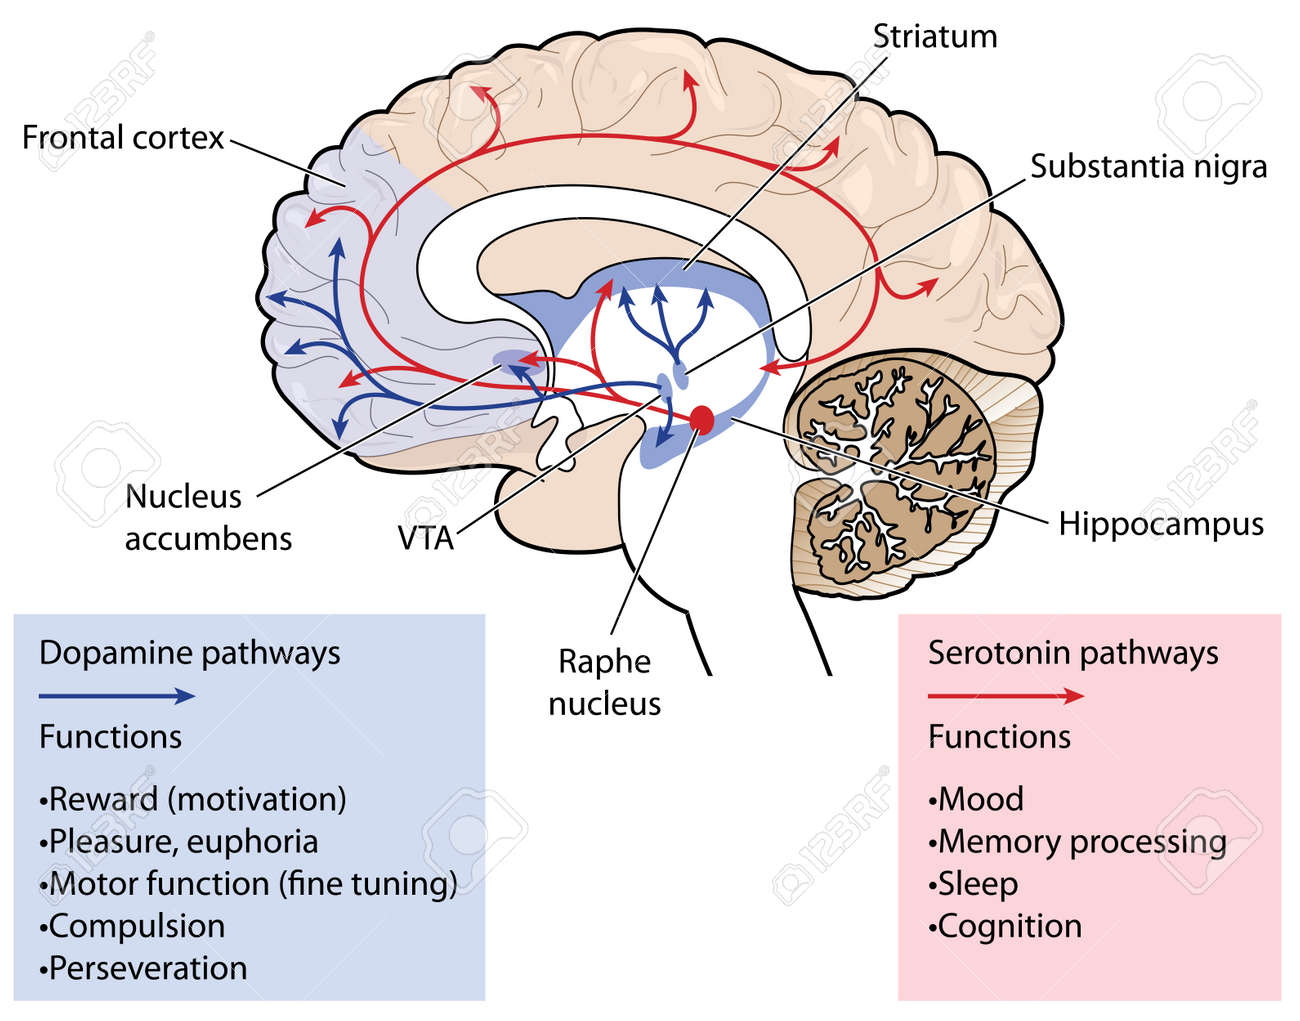 Cross Section Through The Brain Showing The Dopamine And Serotonin ...